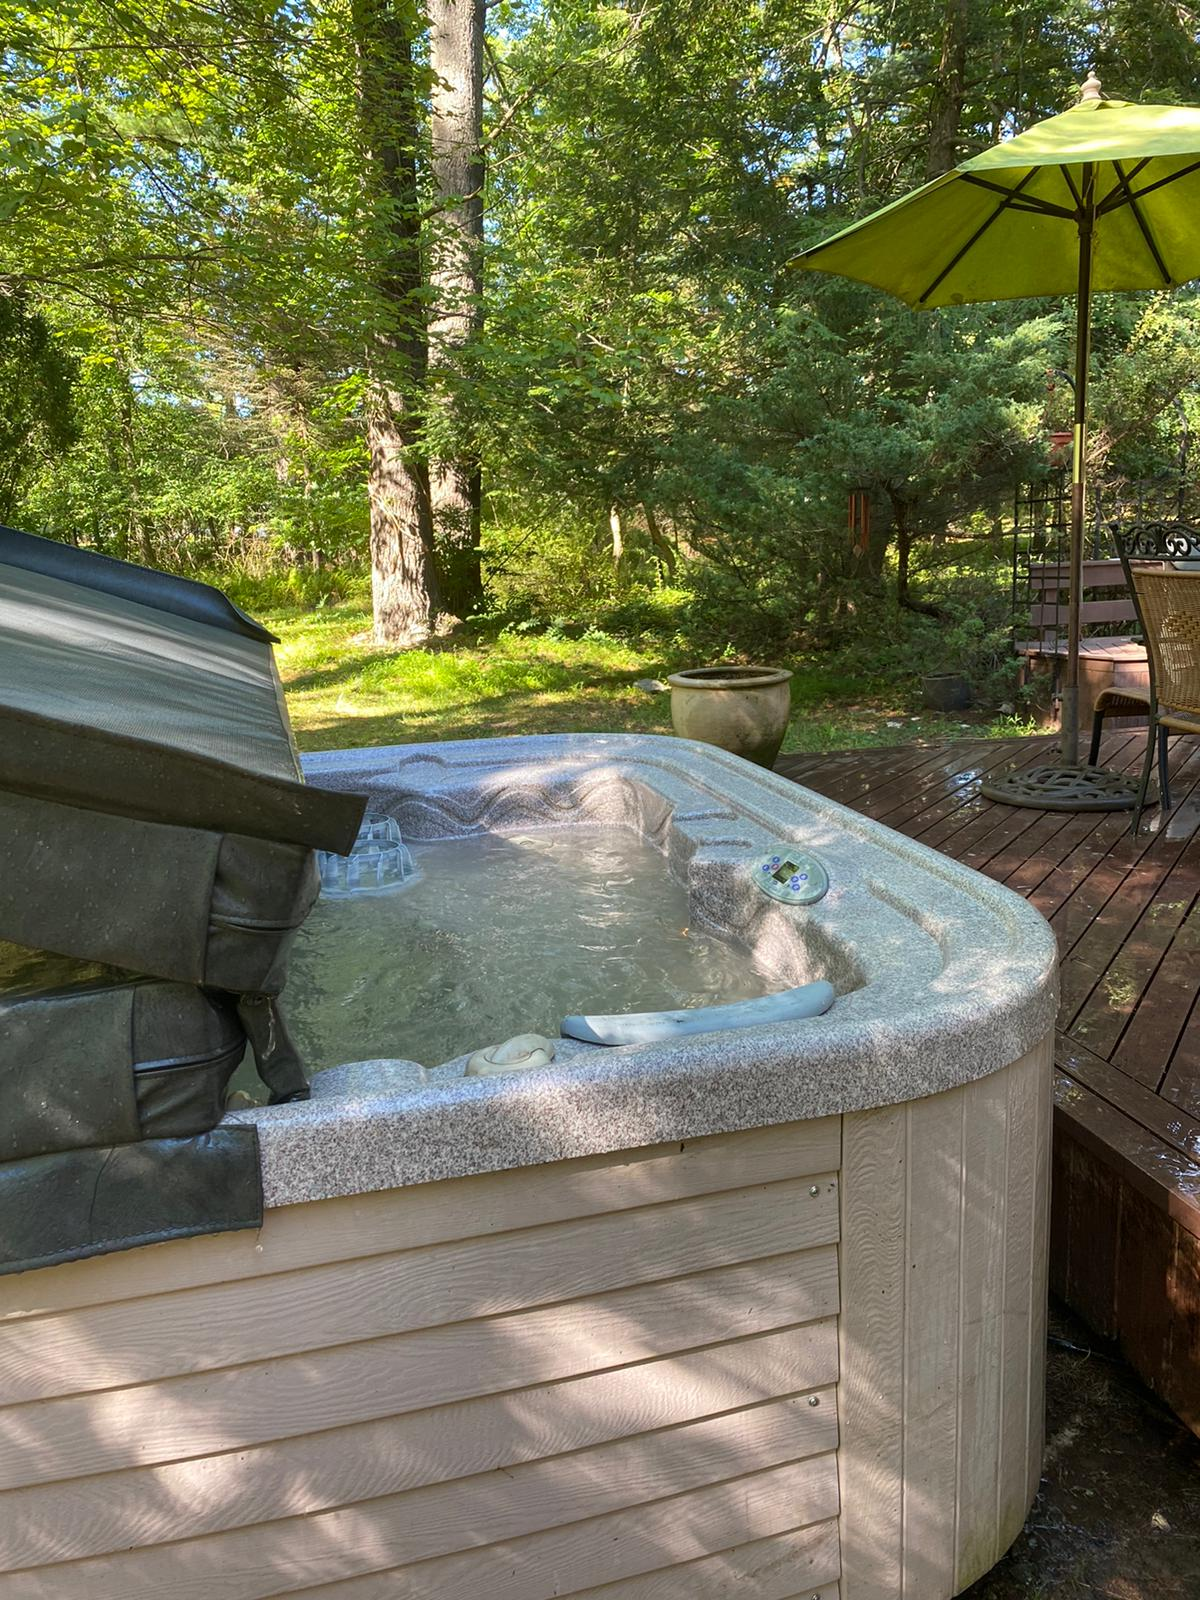 vacation rentals with hot tub near me